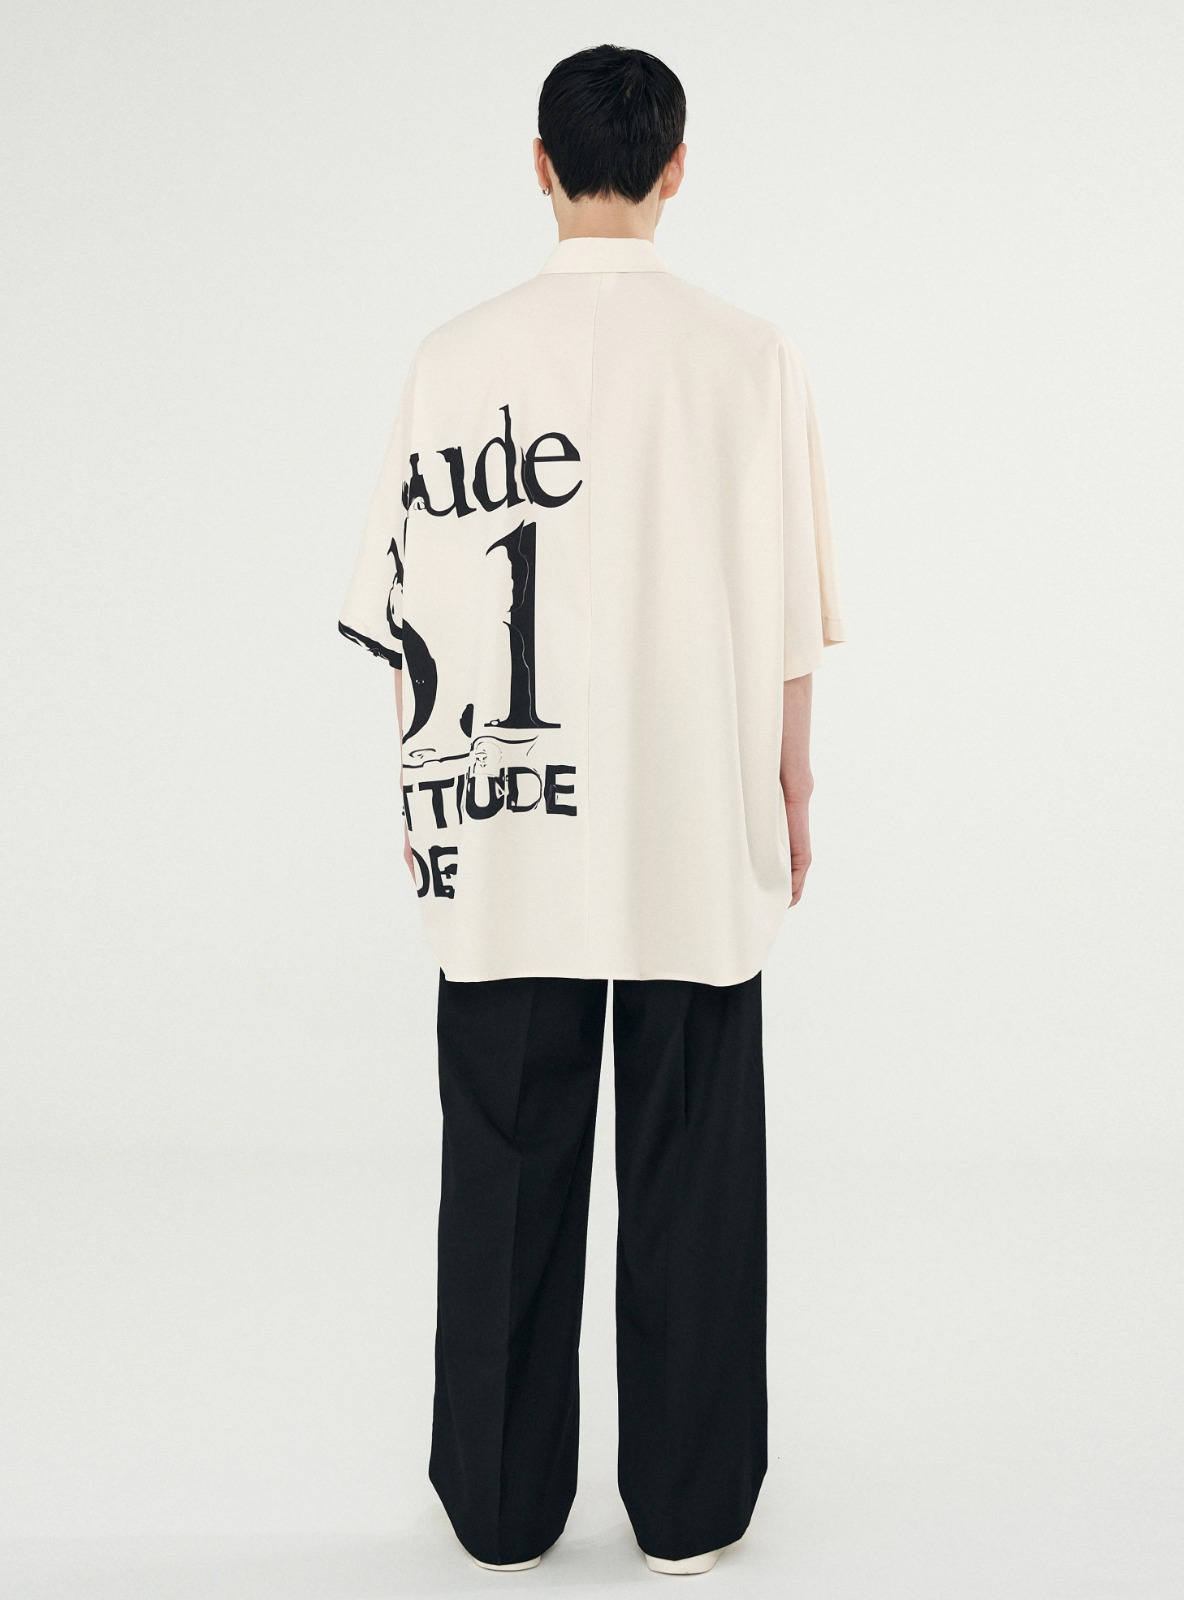 ADDITUDE No.1 AVANTGRADE SHIRT BEIGE